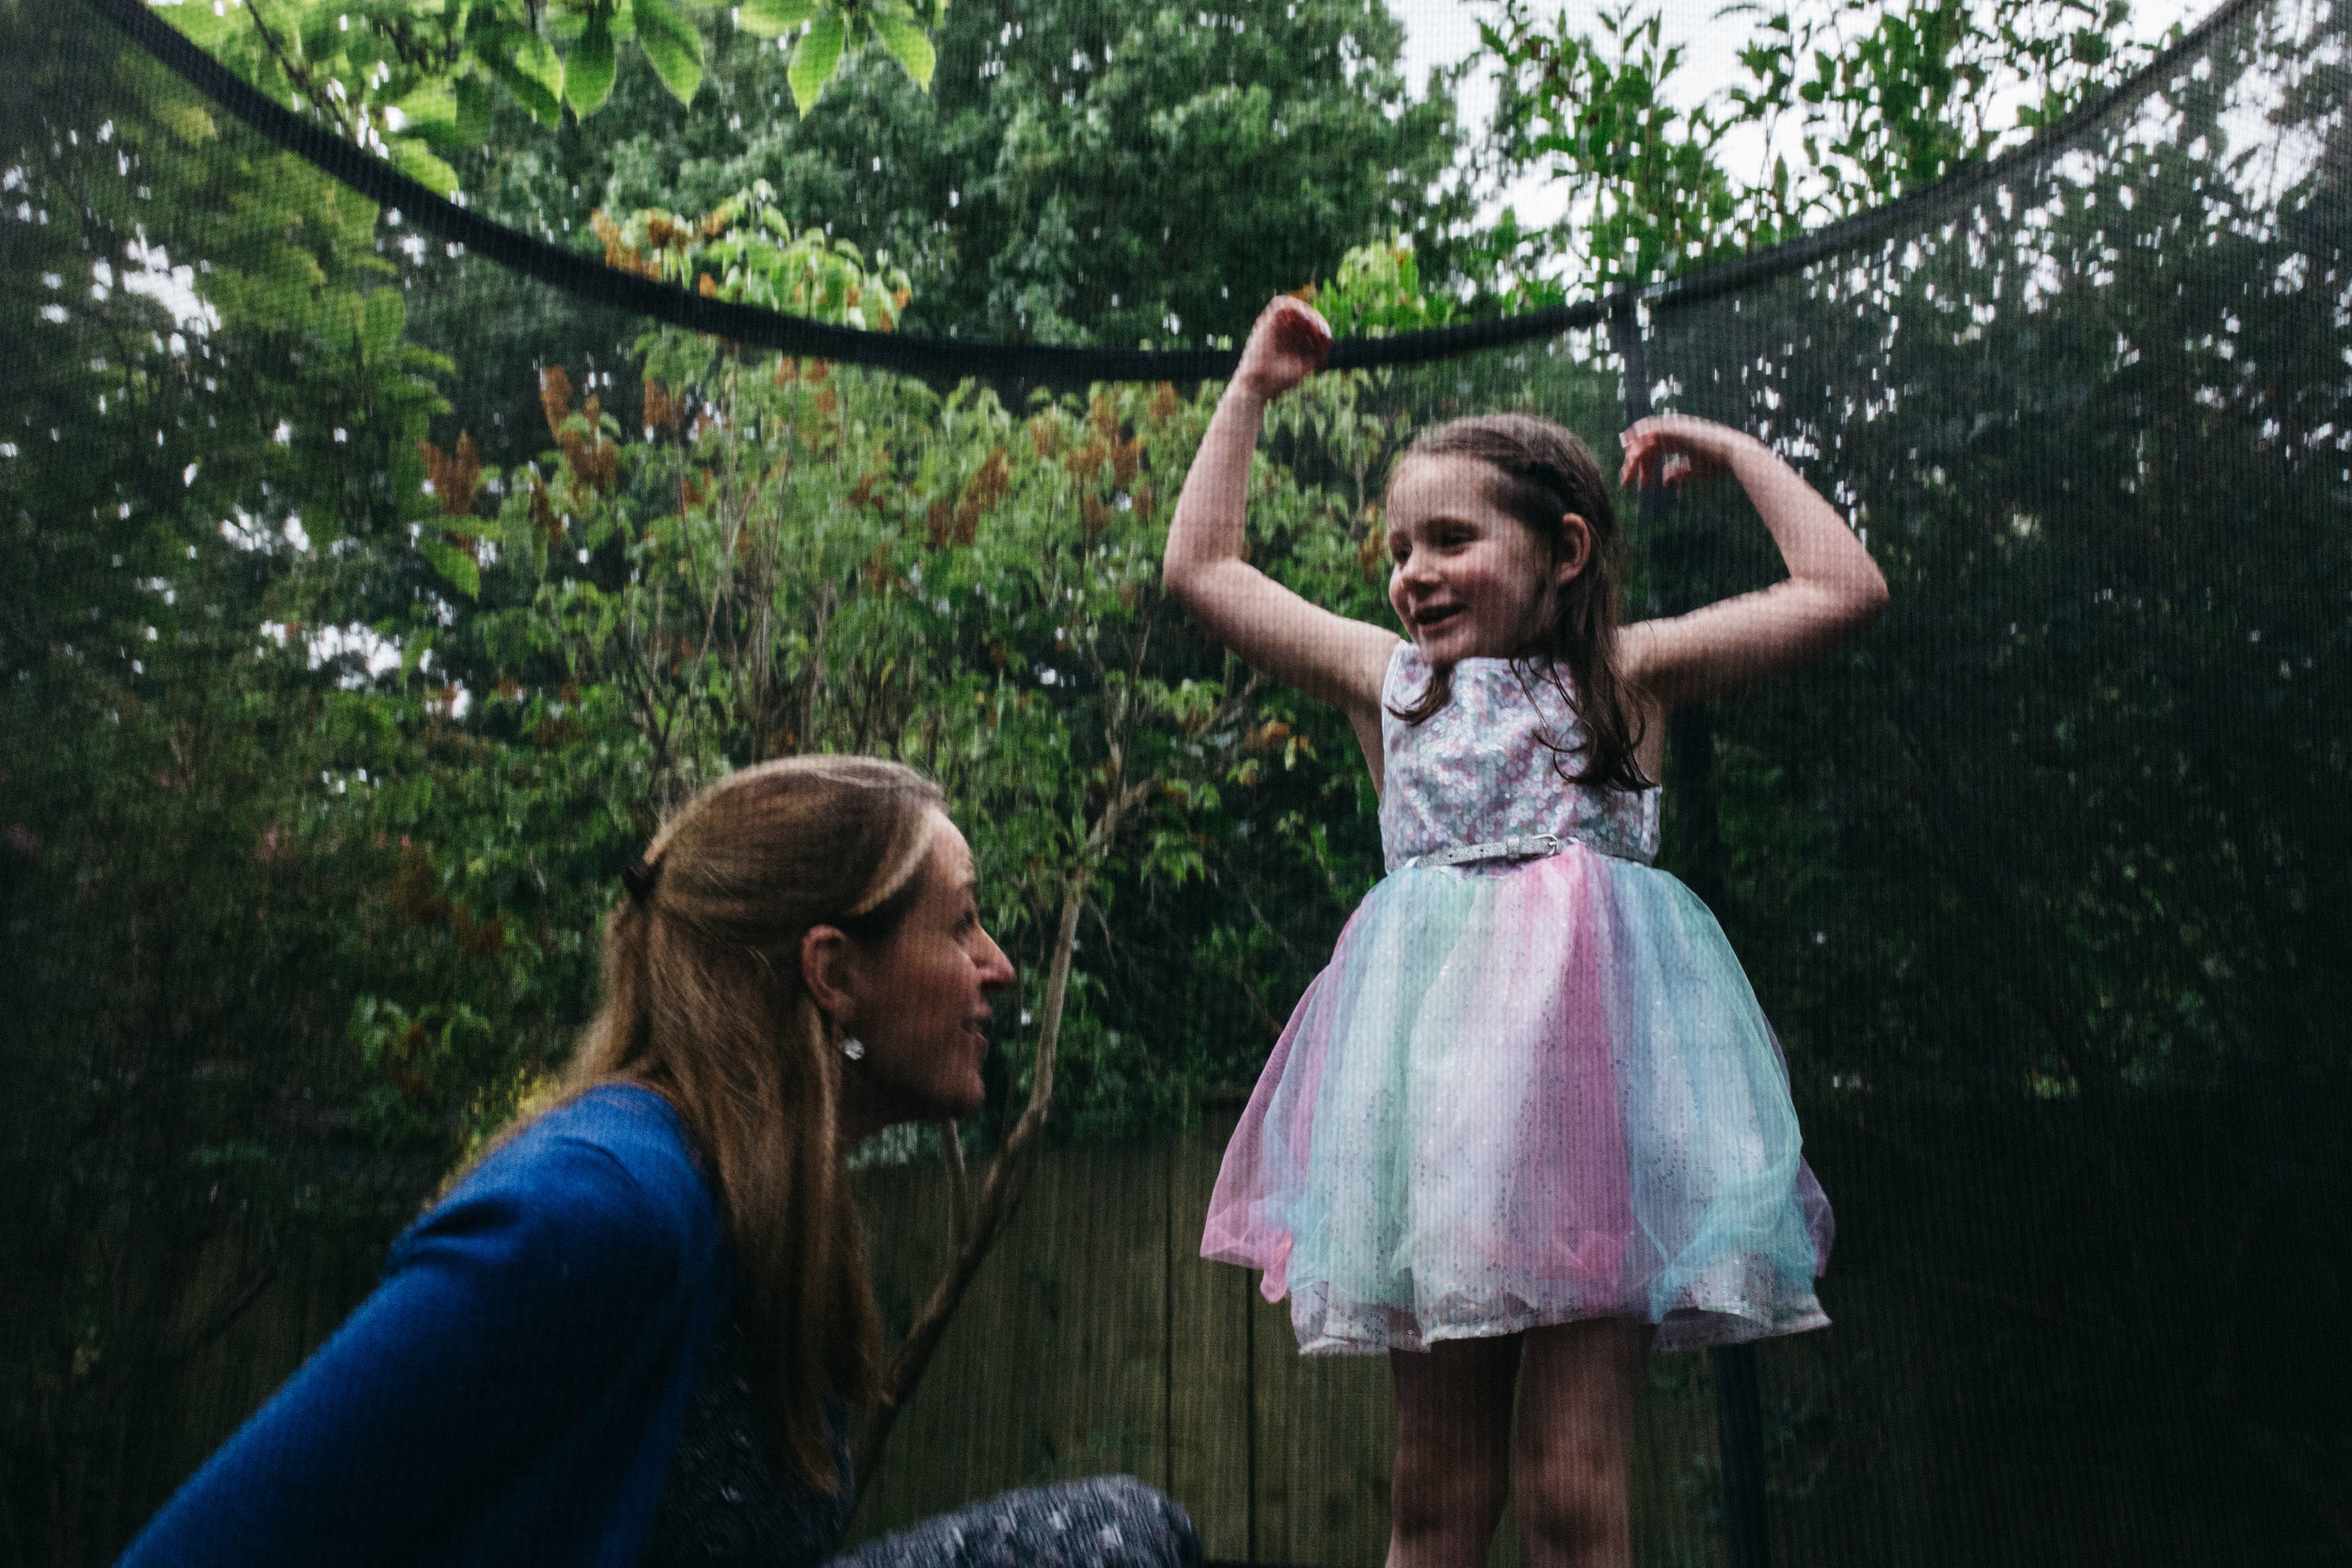 Family photographer in London and Beckenham | Mother and daughter playing